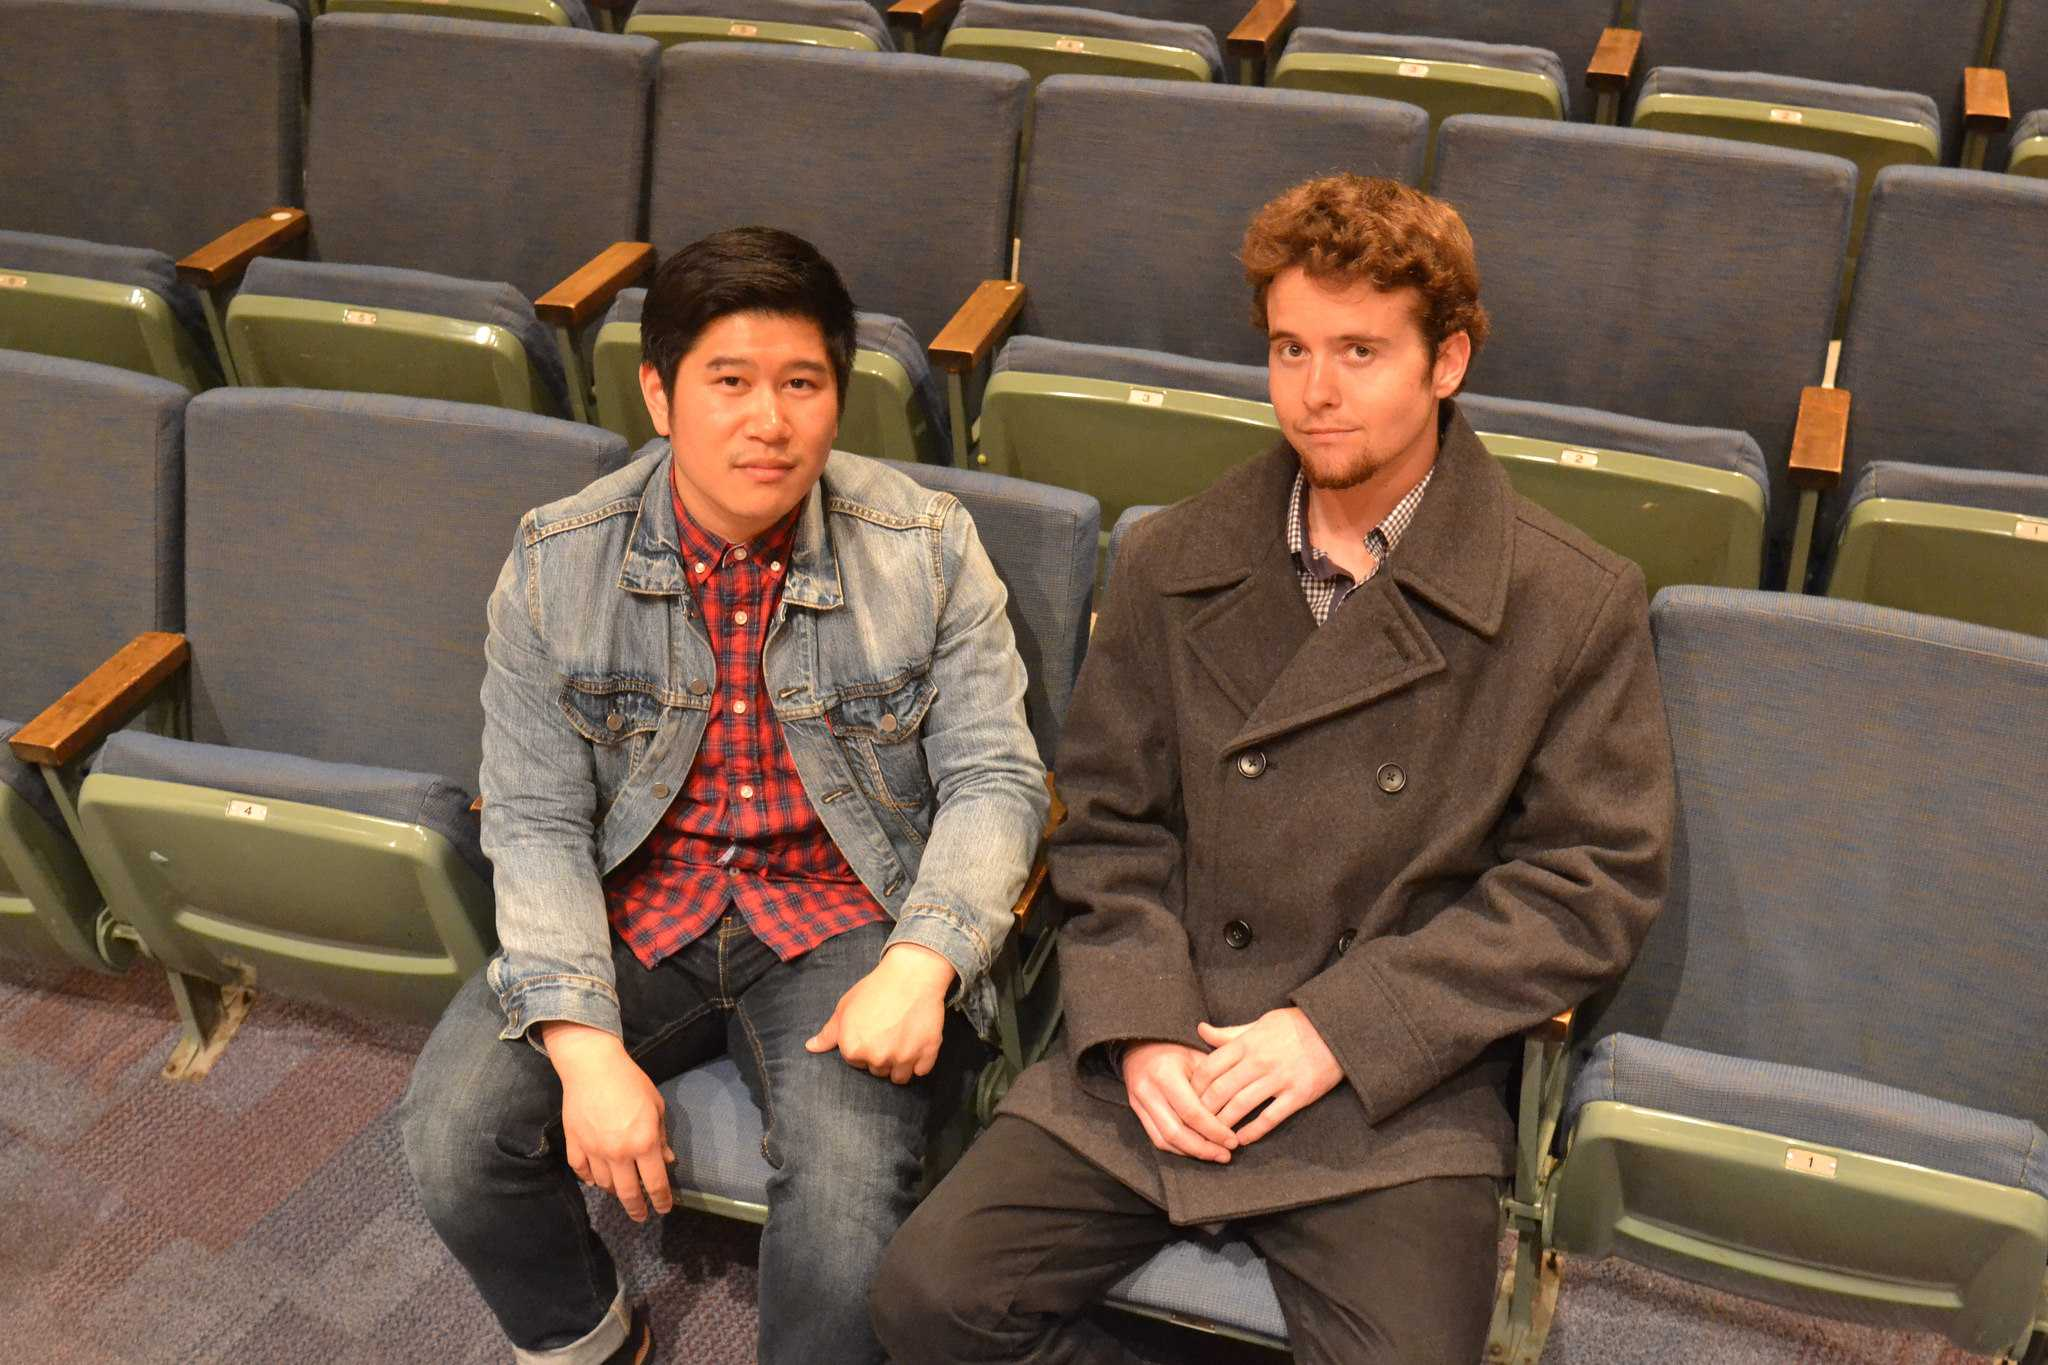 SF State student and co-director of CockTales, Vincent Lam (left) sits with Nathan Barone for a portrait in a theater on campus on Tuesday, April 21.  Barone will perform a spoken word piece in the production CockTales. (Helen Tinna / Xpress)